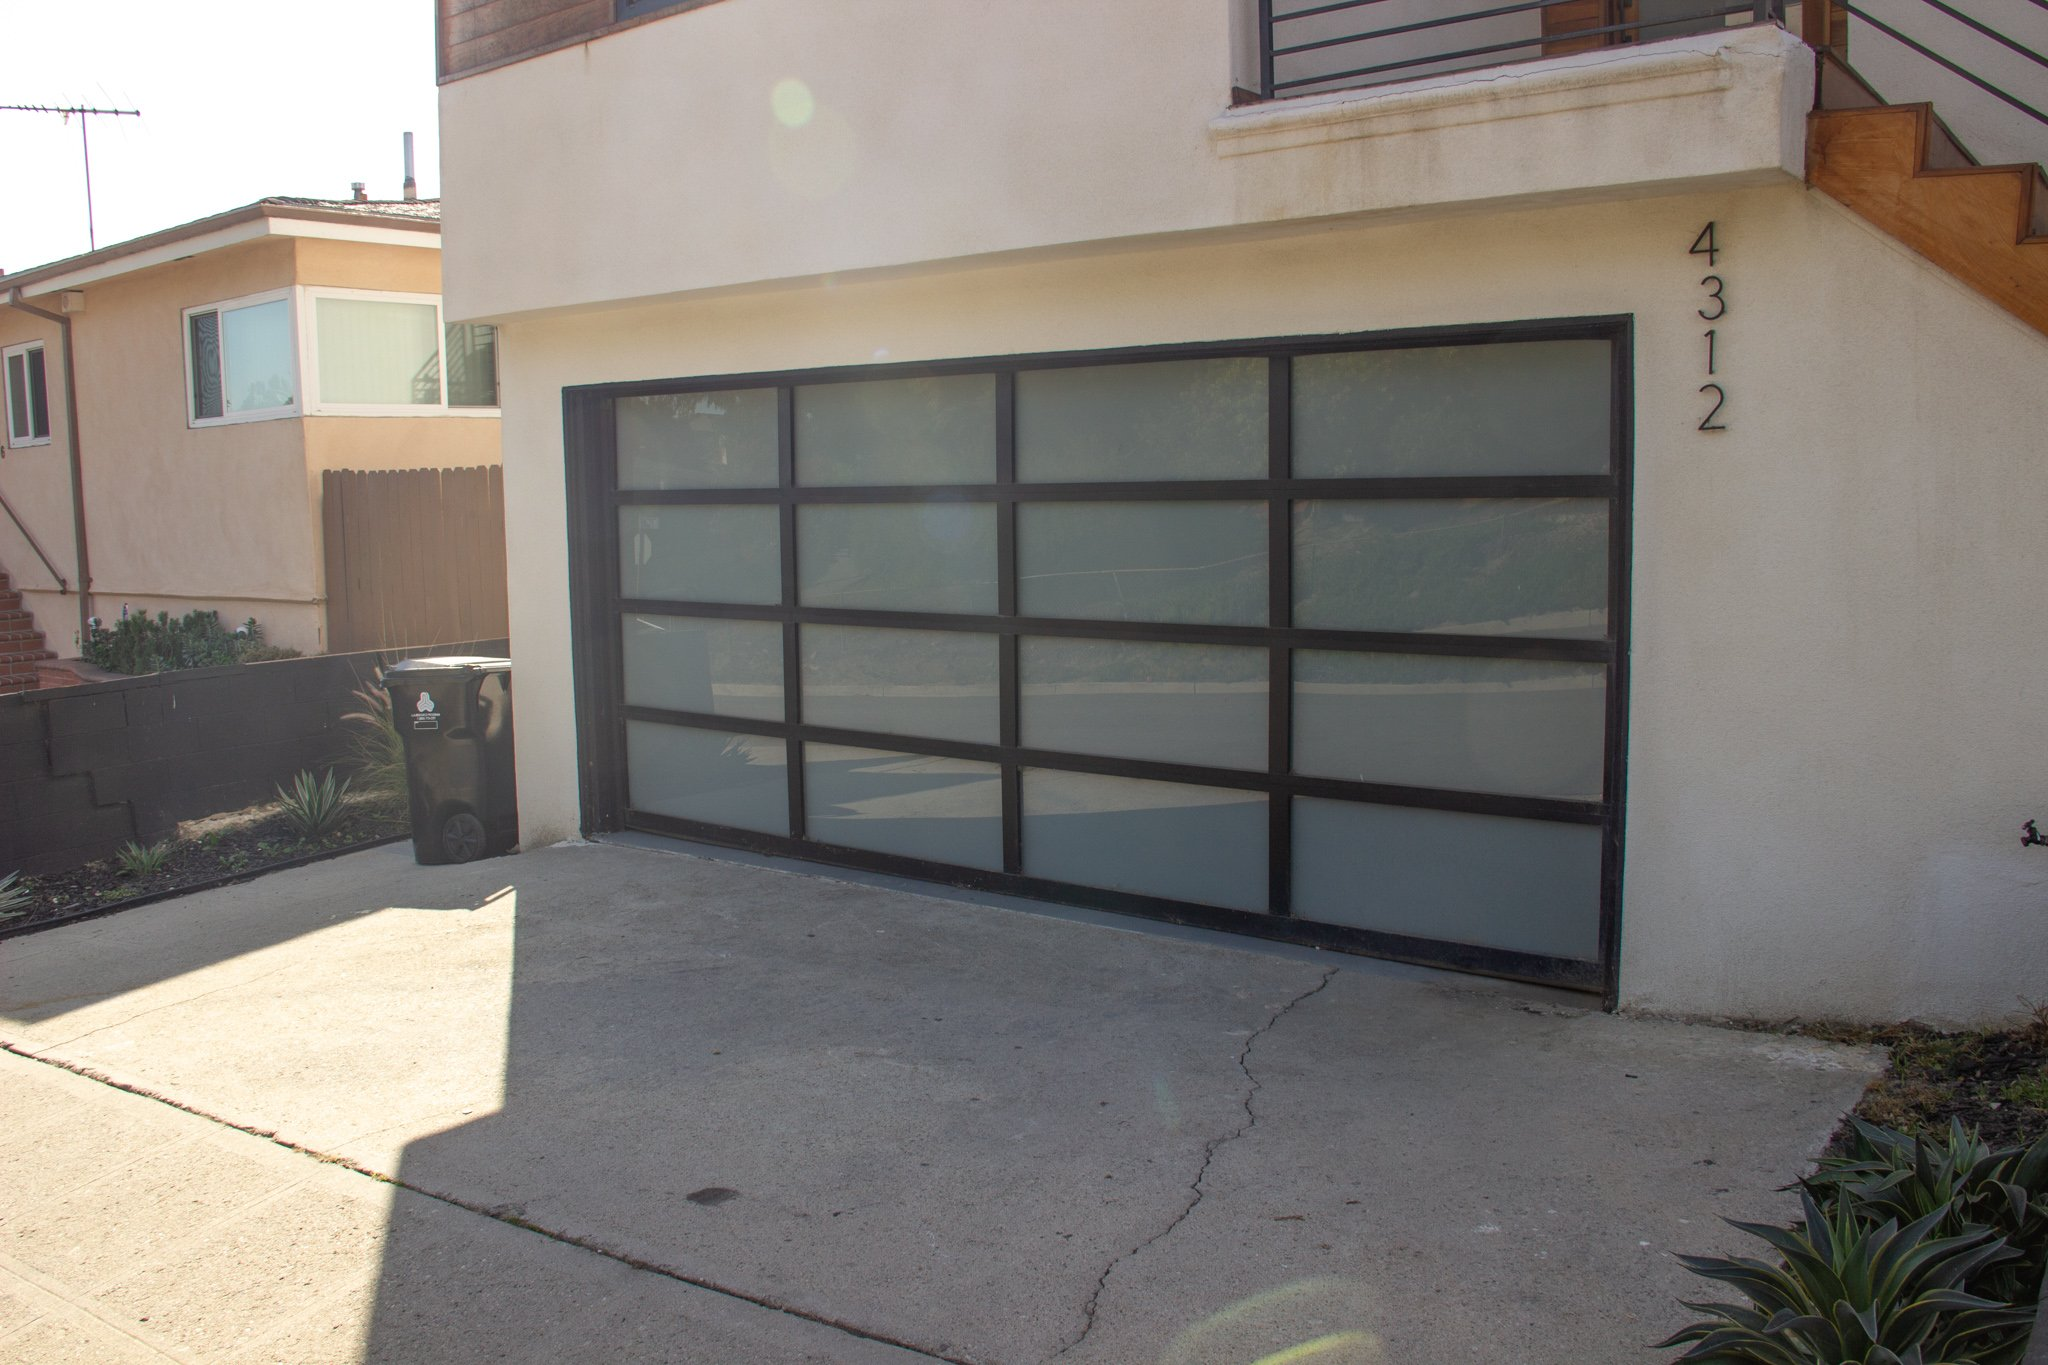 10x5 Garage self storage unit